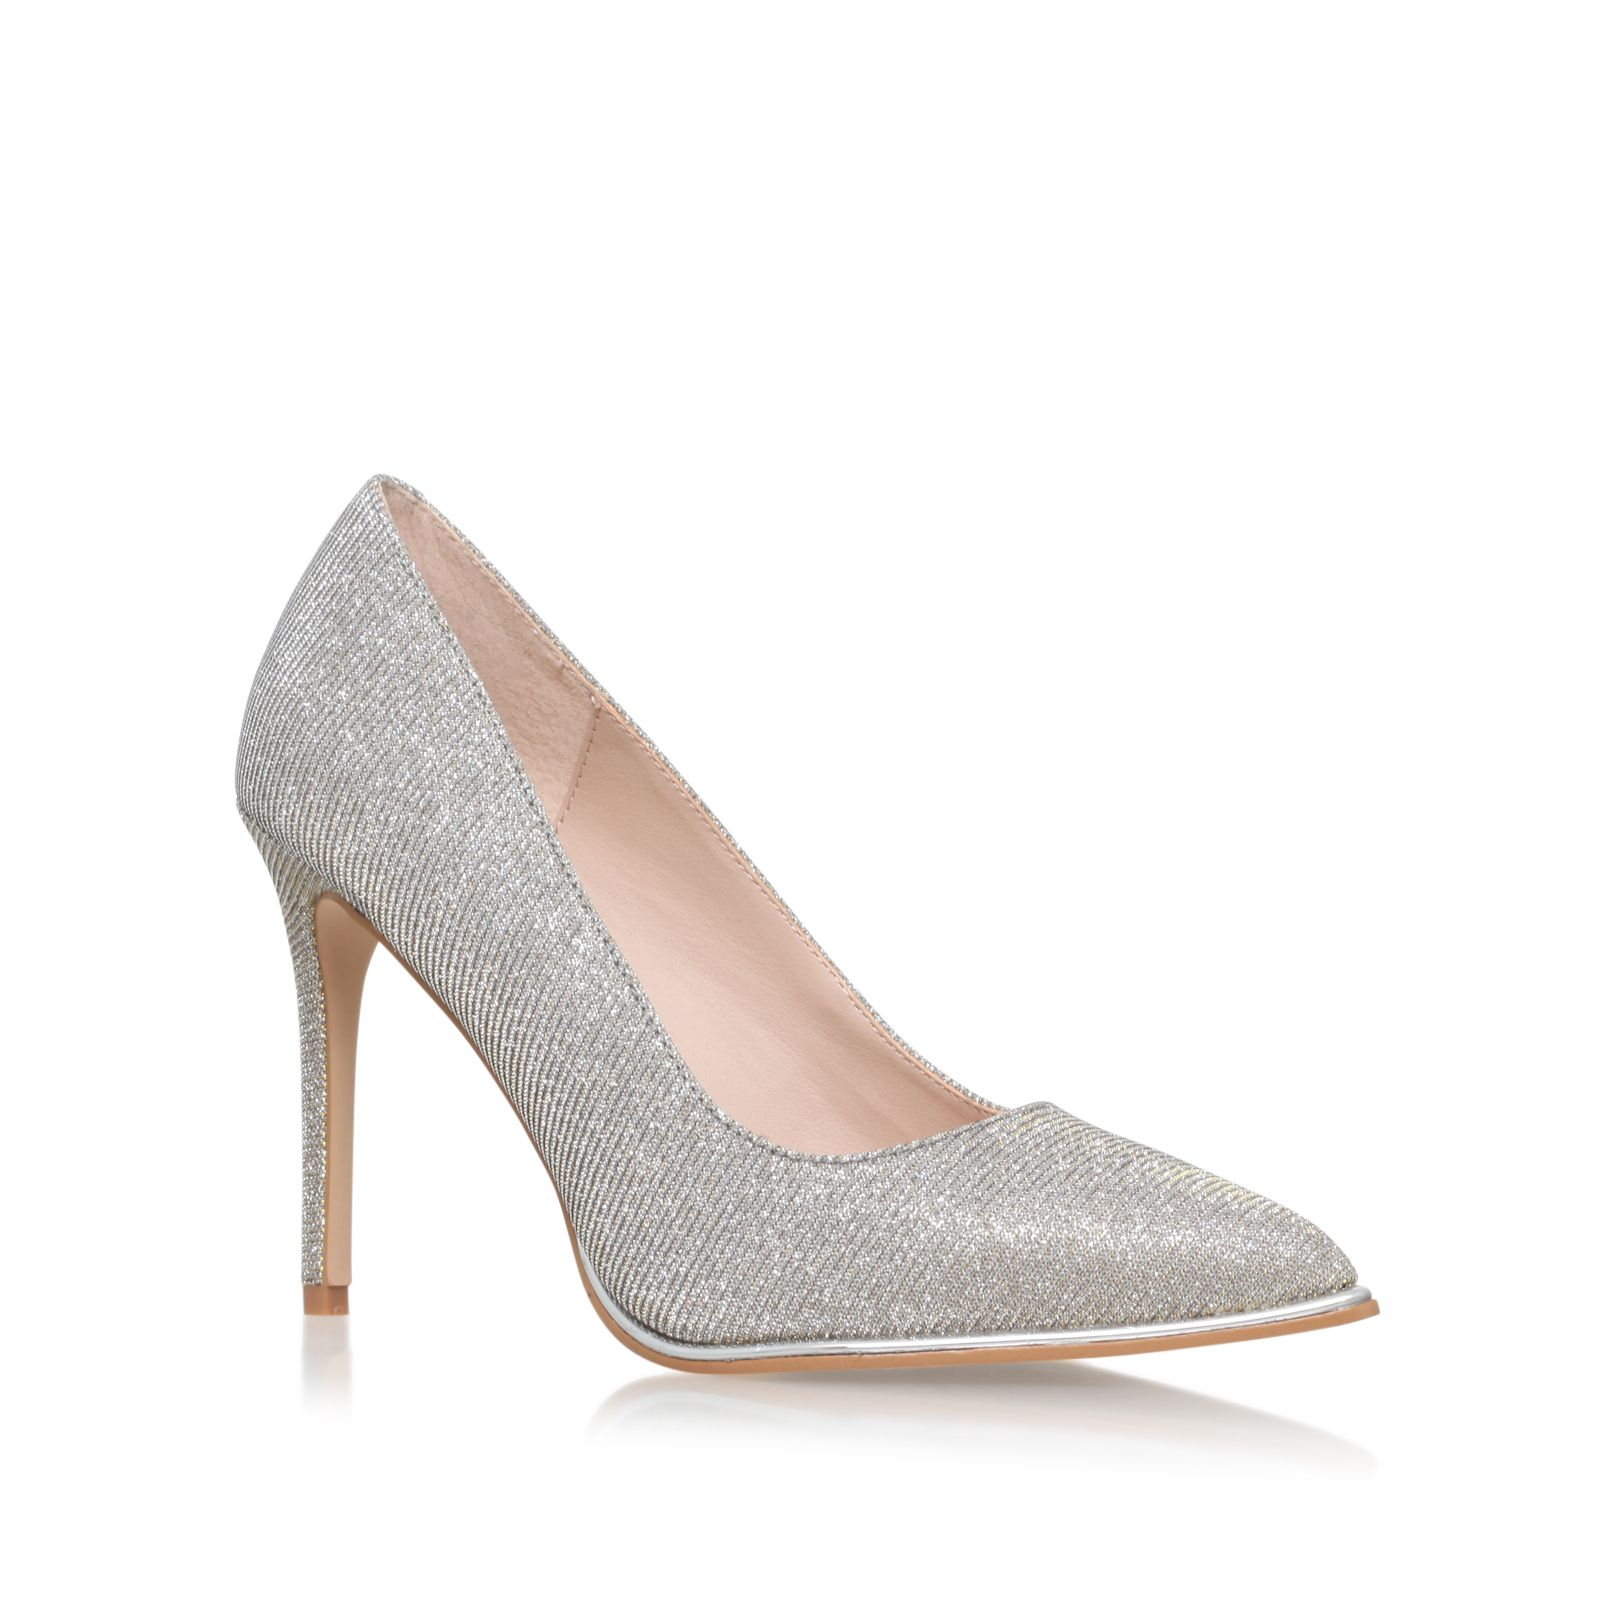 KG Beauty High Heeled Pointed Toe Courts, Silver